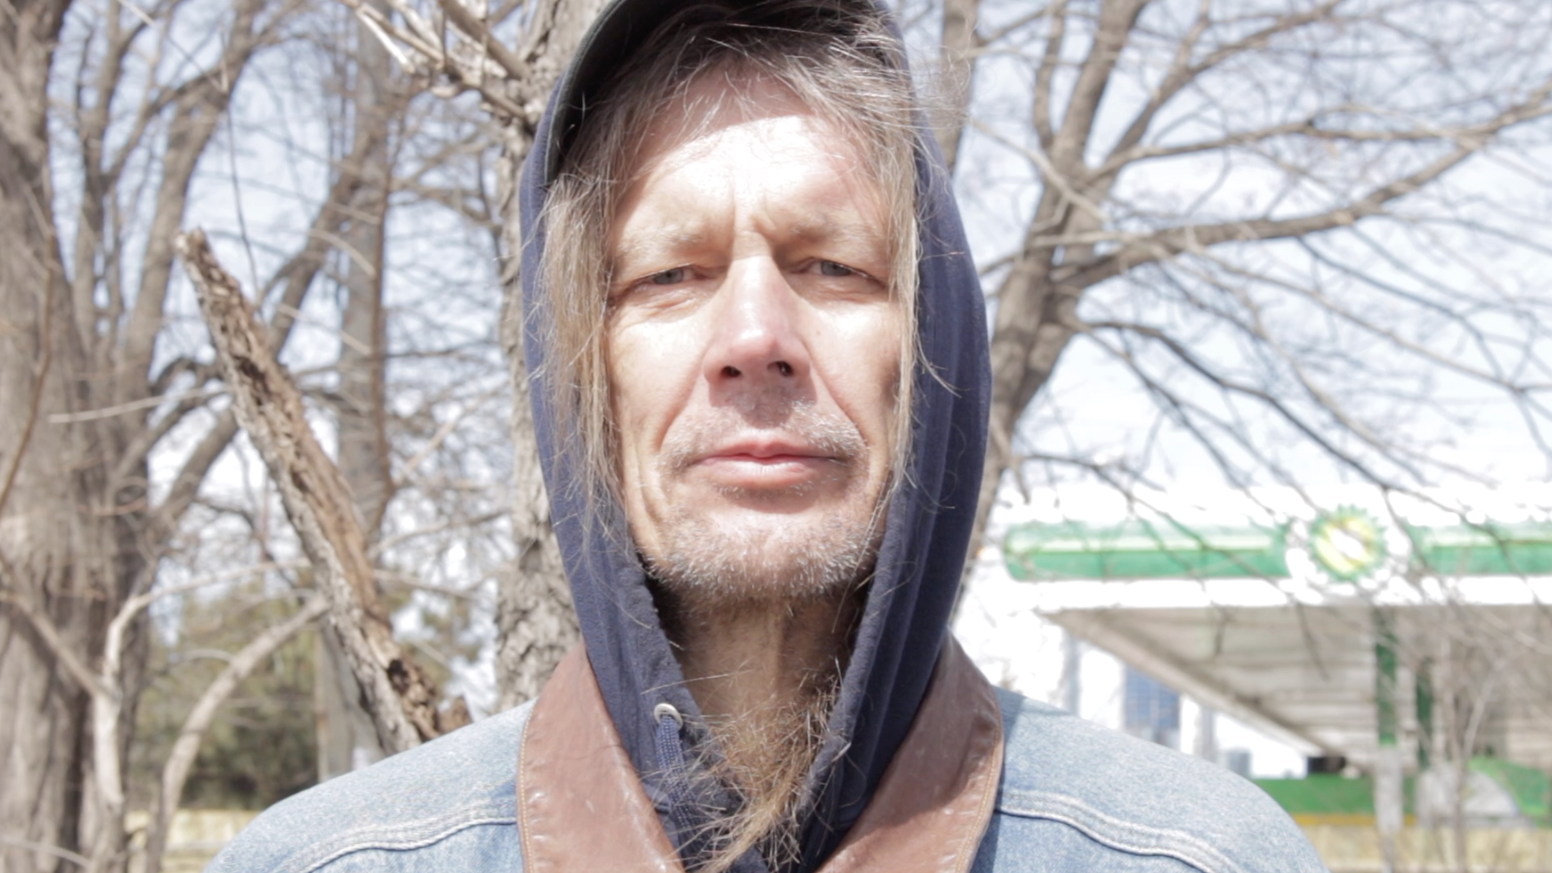 A documentary exploring Chicago's homeless communities and housing process...